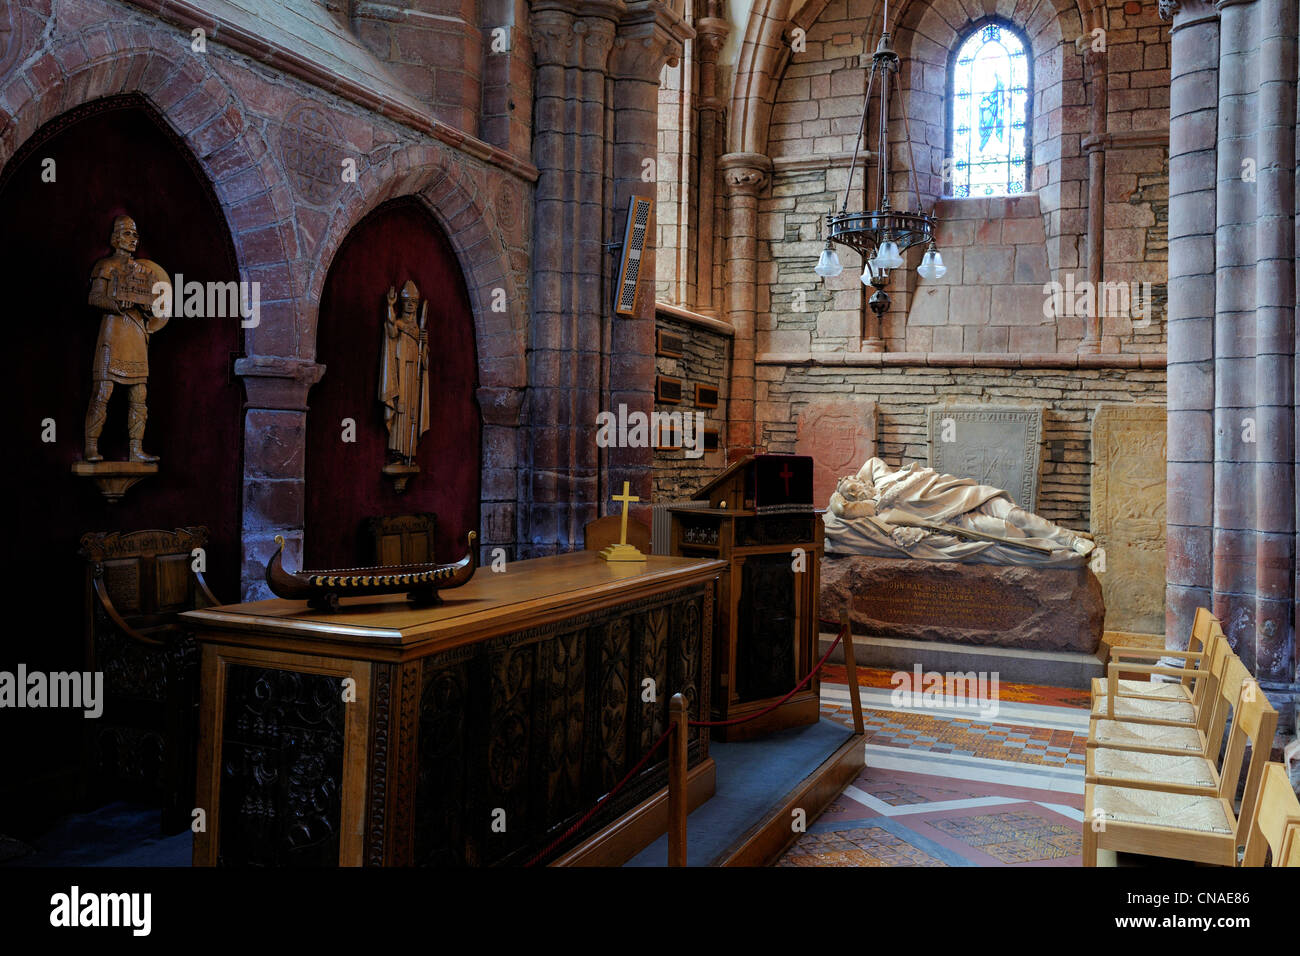 United Kingdom, Scotland, Orkney Islands, Mainland, town of Kirkwall, Saint-Magnus cathedral, altar with a longship - Stock Image